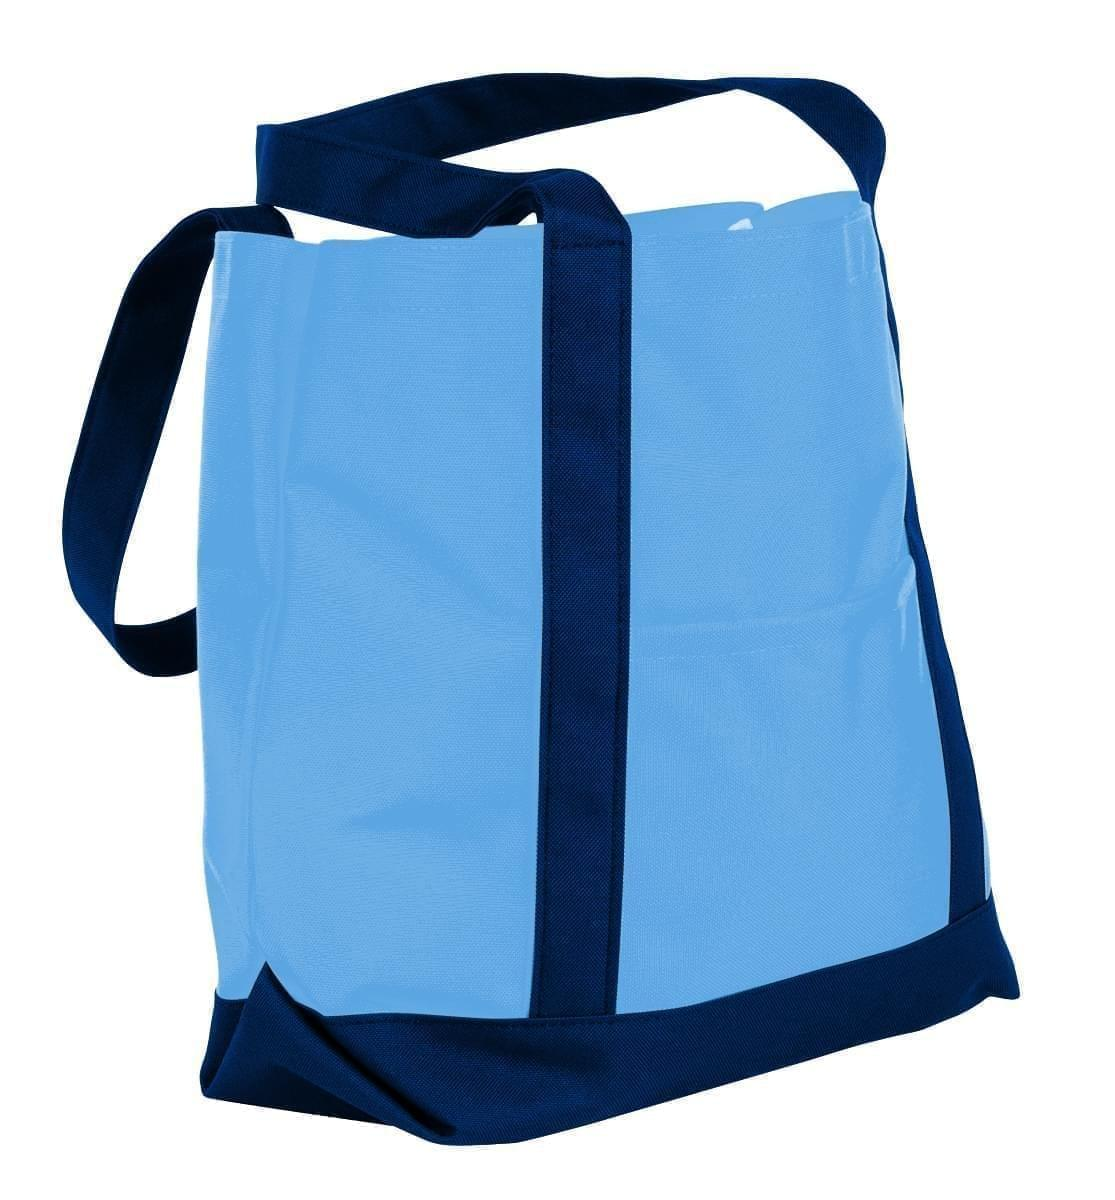 USA Made Nylon Poly Boat Tote Bags, Columbia-Navy, XAACL1UAUI